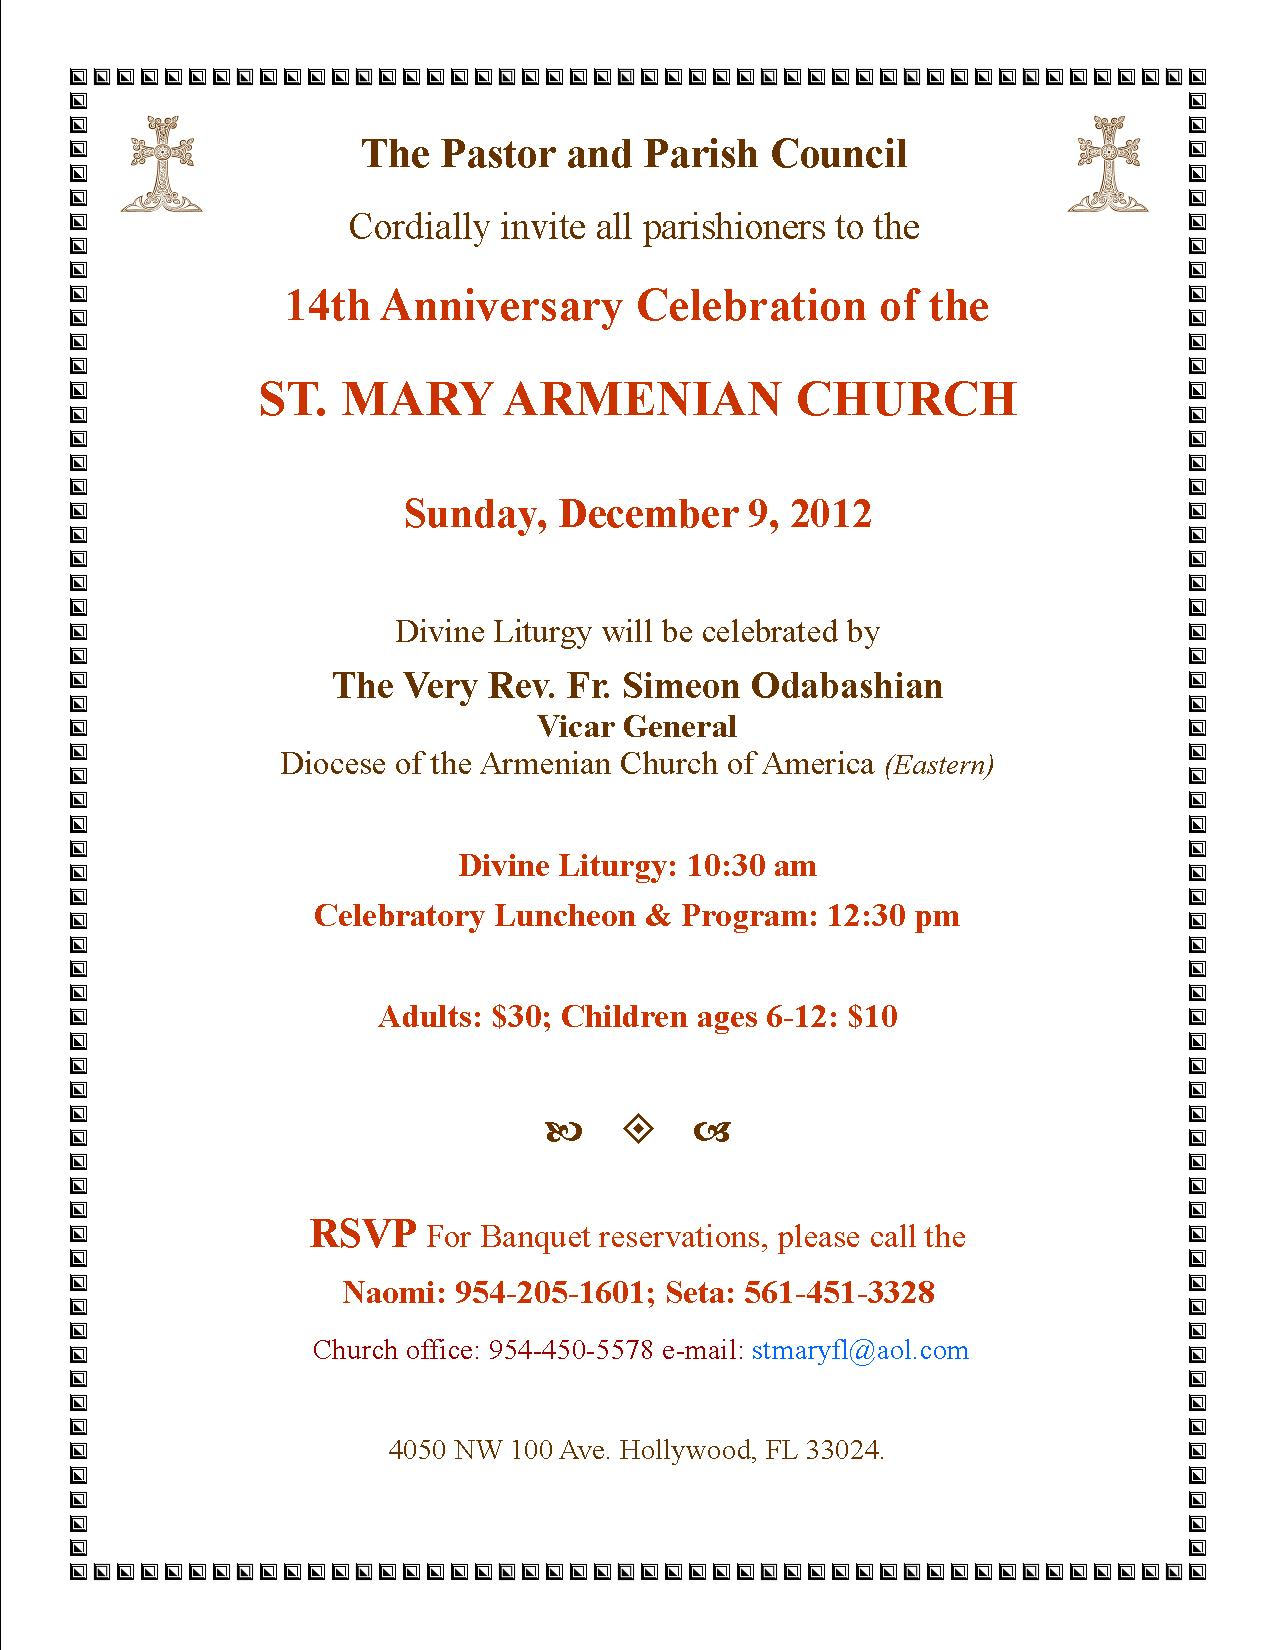 St Mary Armenian Church 14th Anniversary Celebration